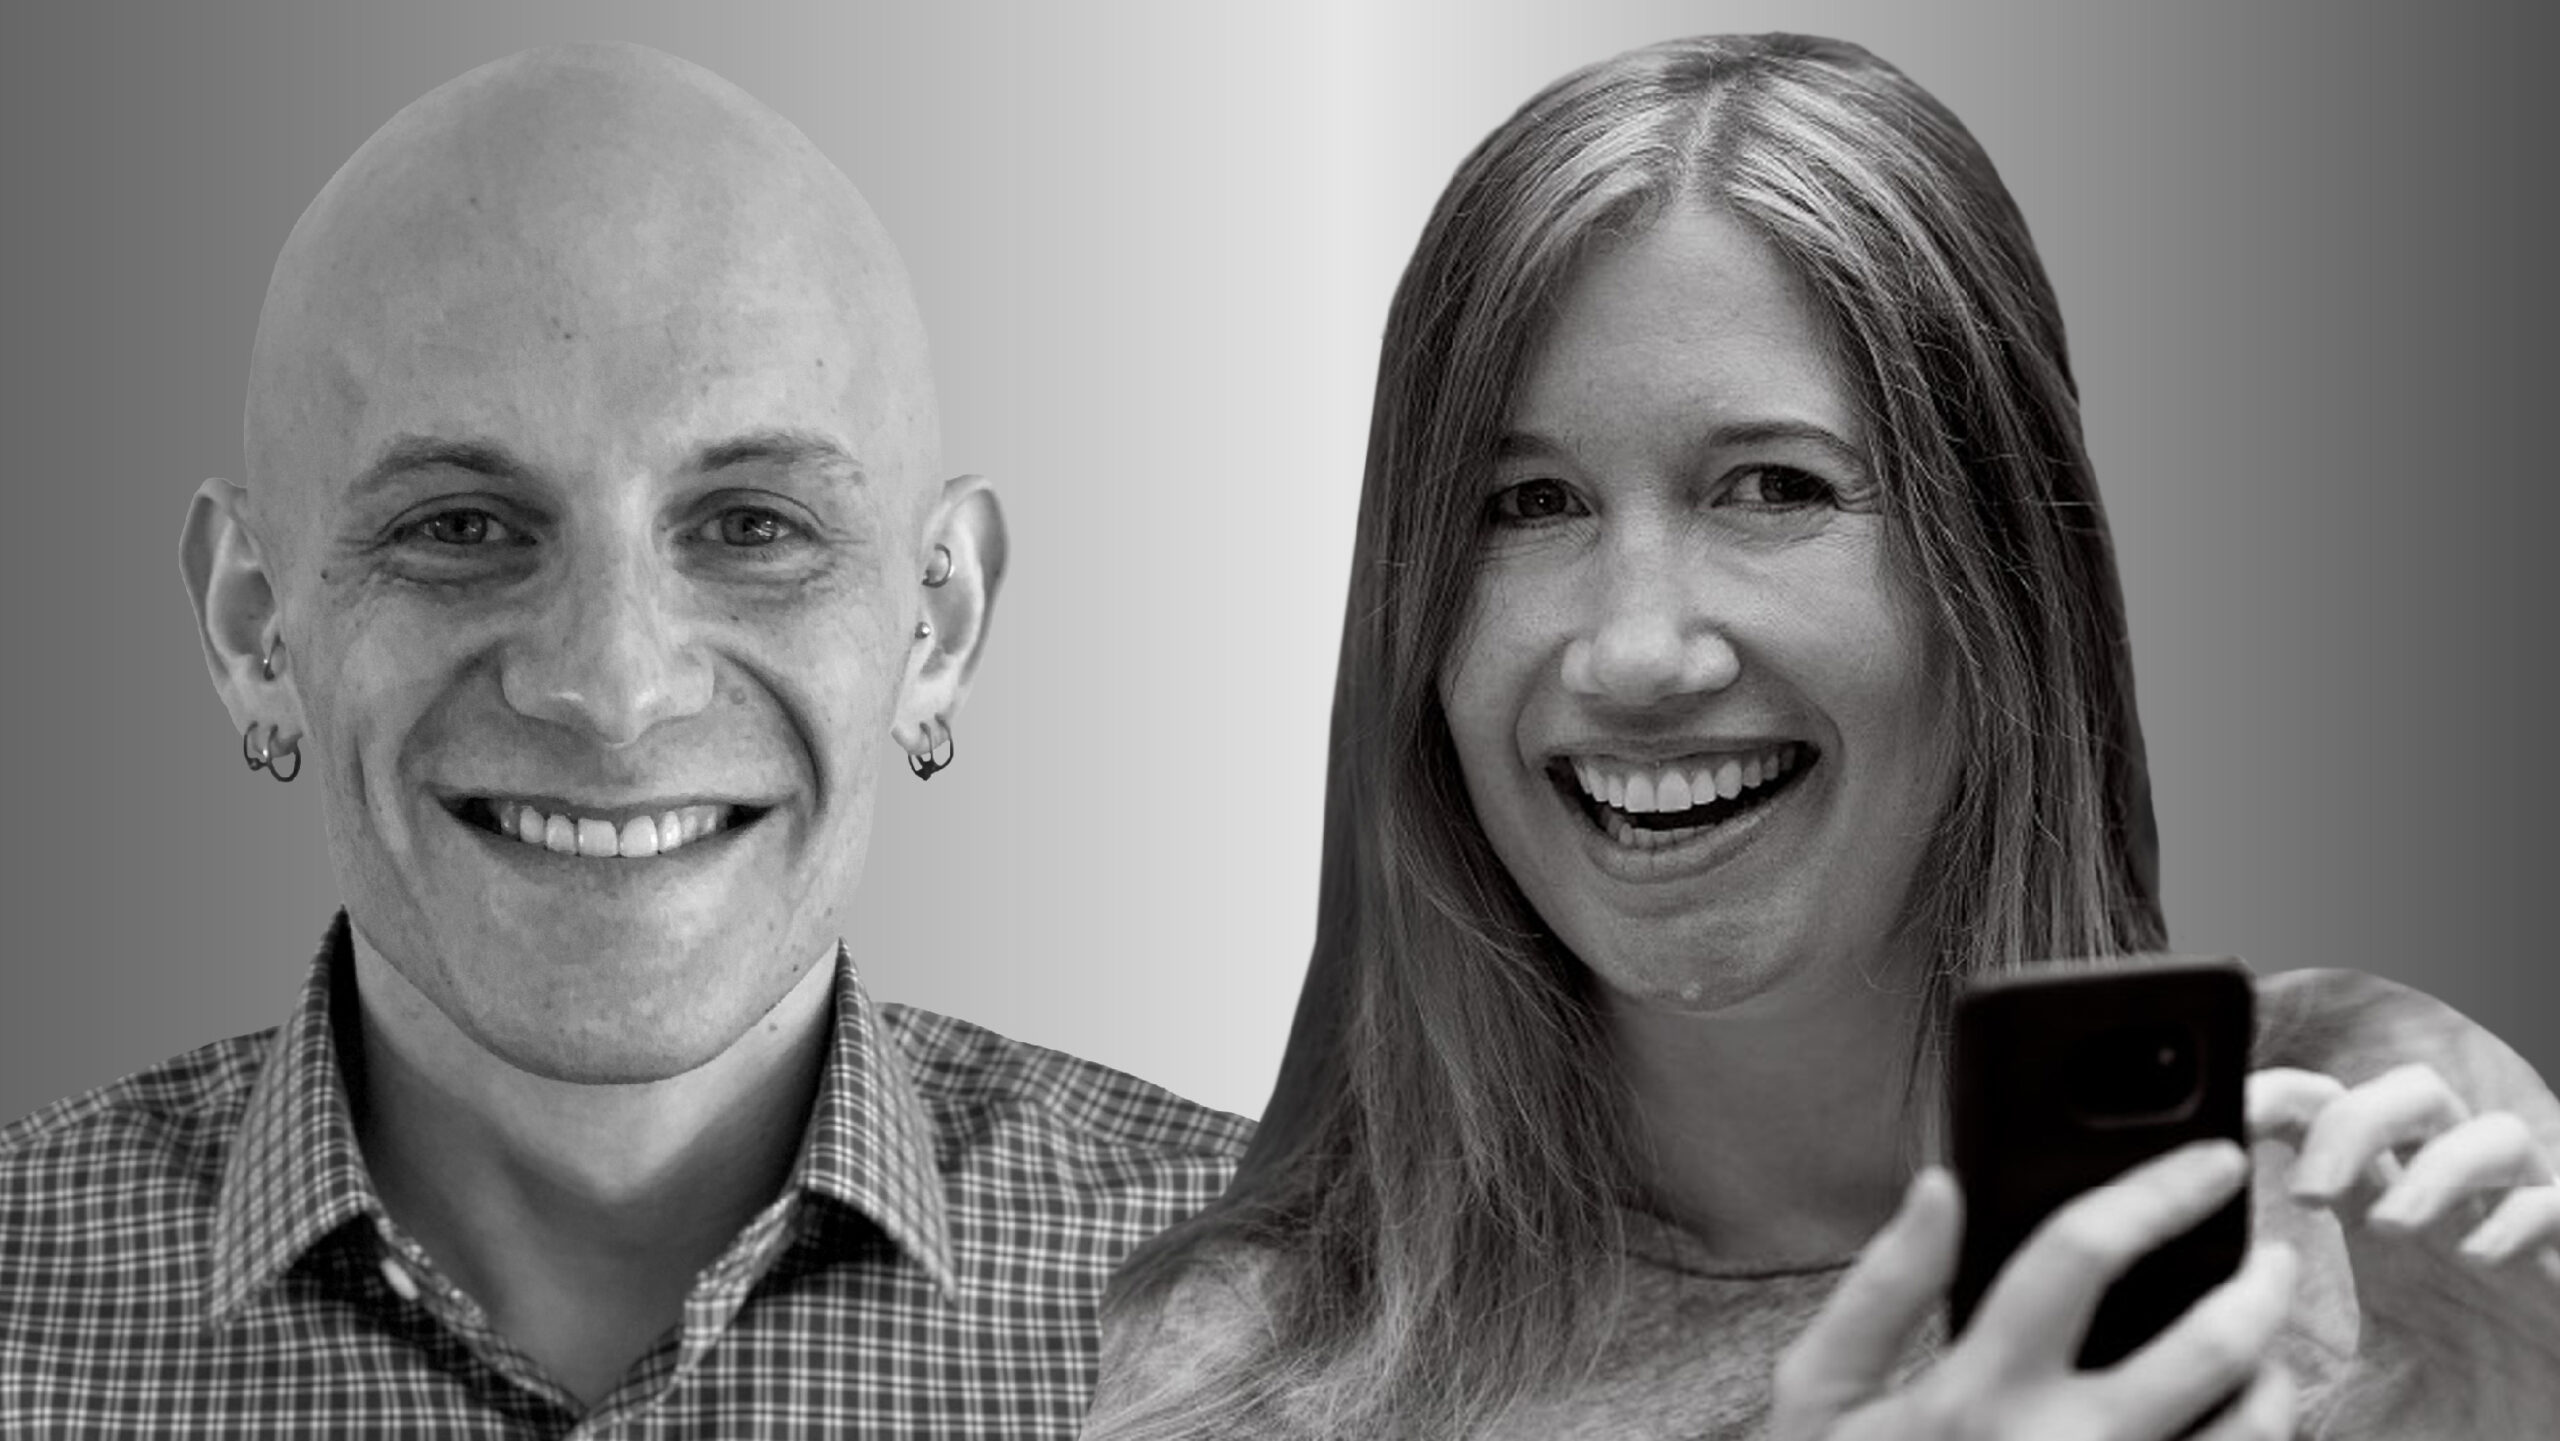 Jaime Teevan and Brent Hecht on the Microsoft Research Podcast